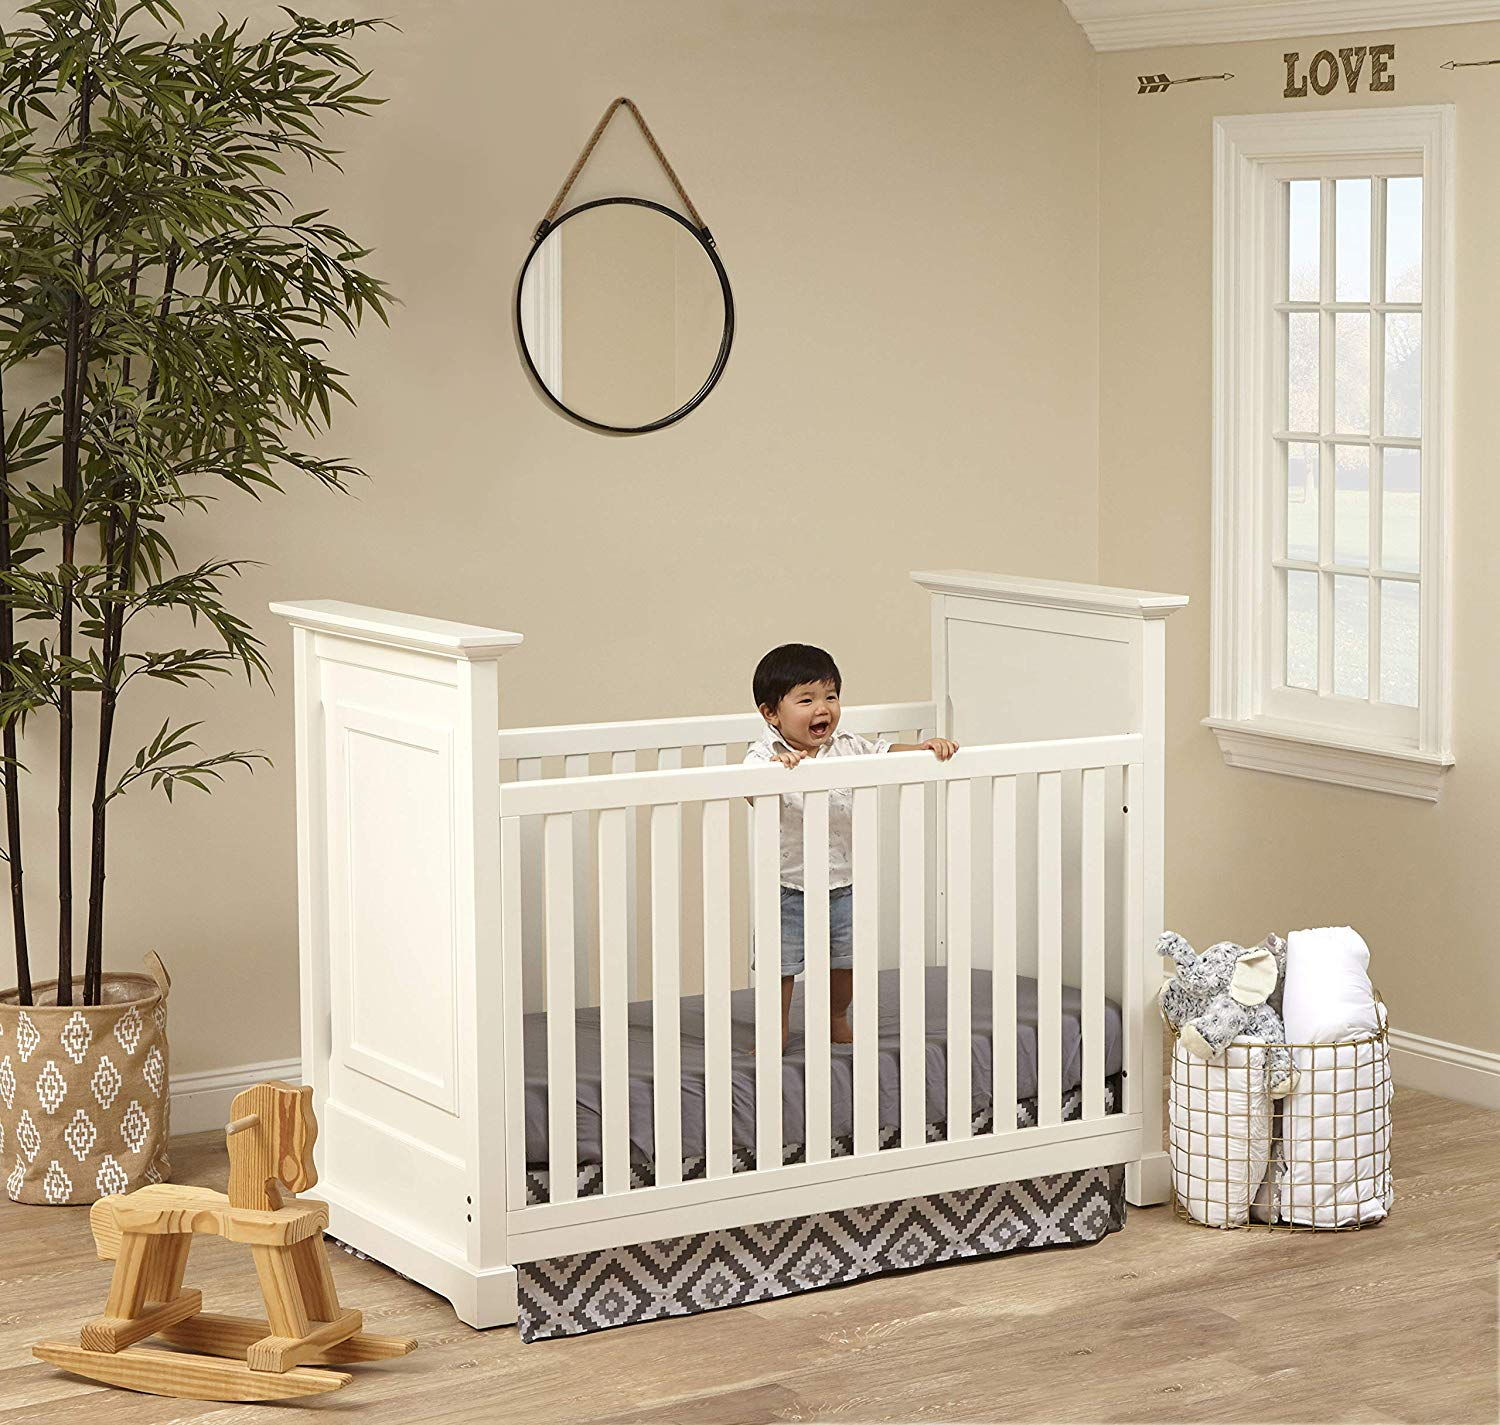 Baby Cache Cape Cod 3-in-1 Convertible Island Baby Crib